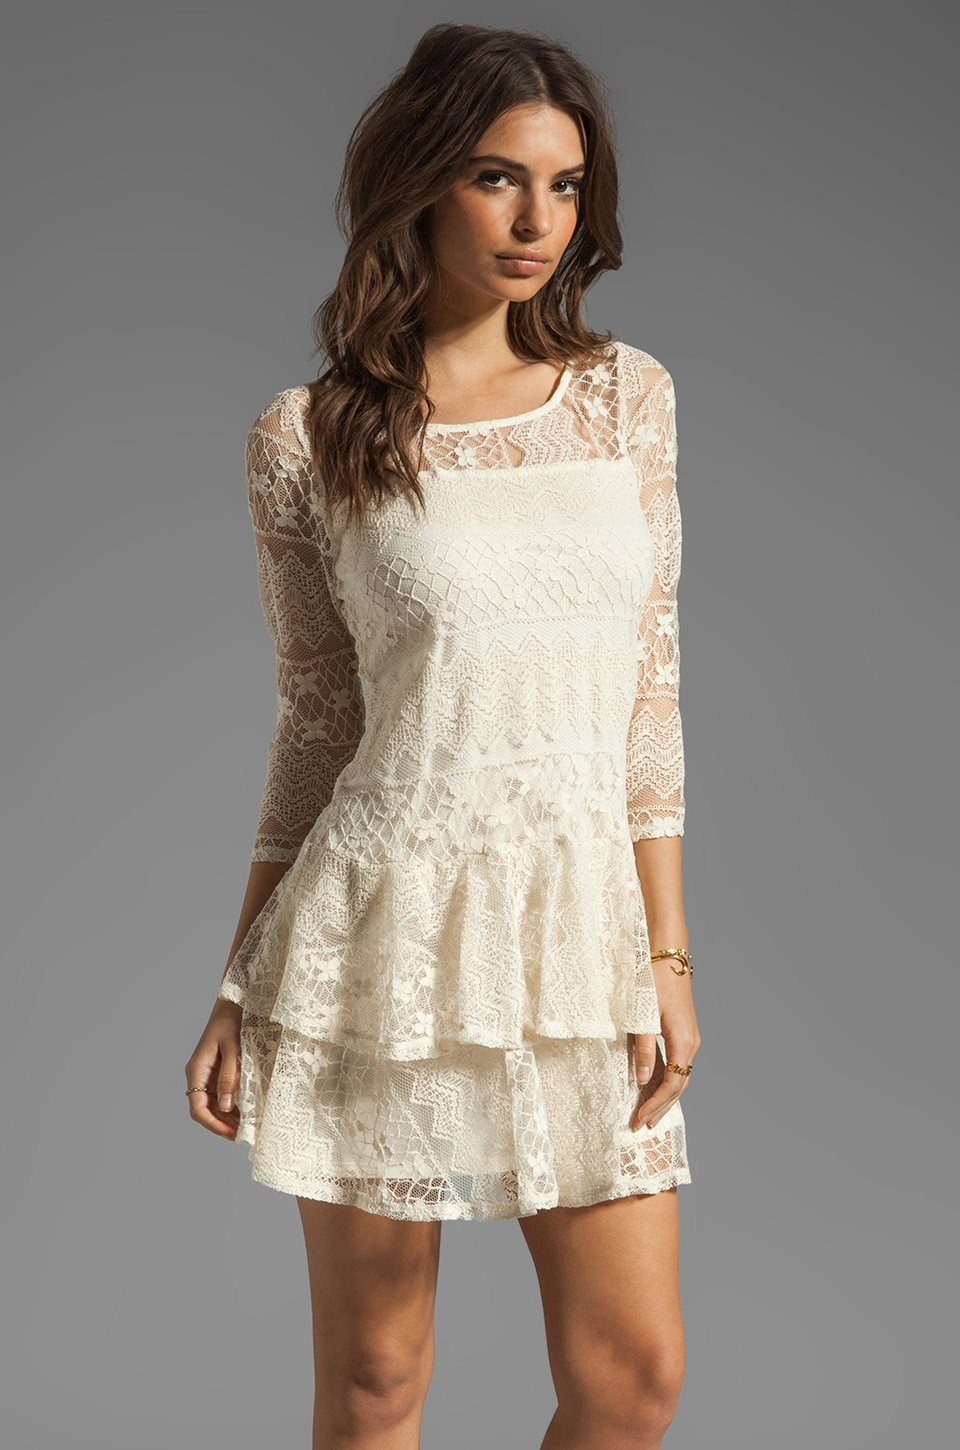 Ella Moss Kayte Lace Dress in Linen